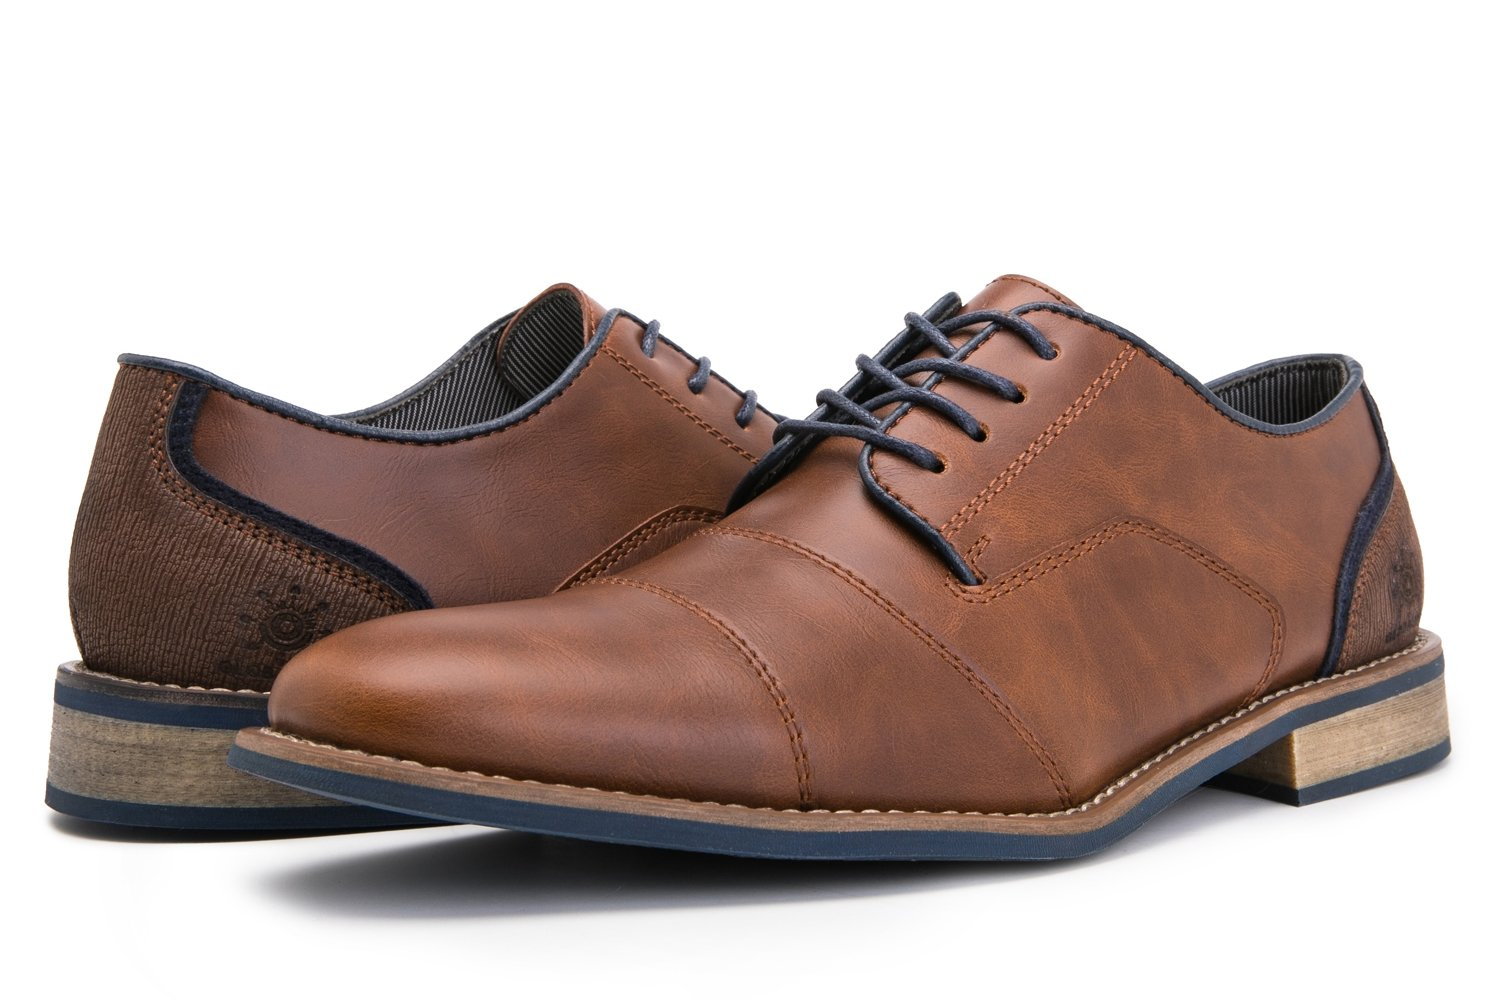 GW Mens 16573 Oxford Shoes 11M,Brown16573 by Global Win